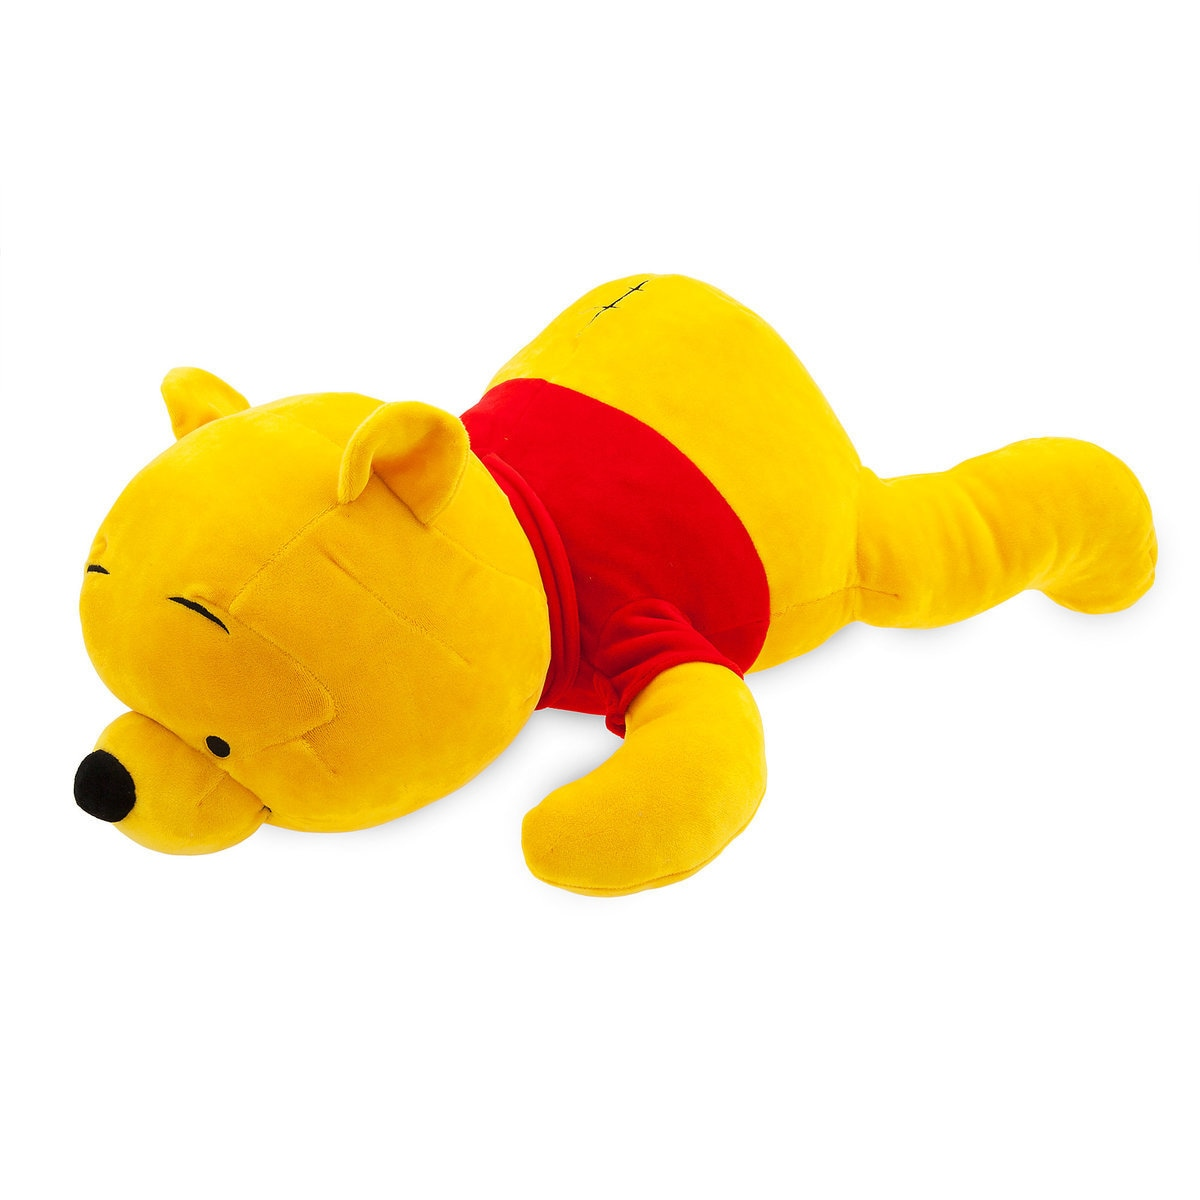 5f8d27c699c3 Product Image of Winnie the Pooh Cuddleez Plush - Large   1